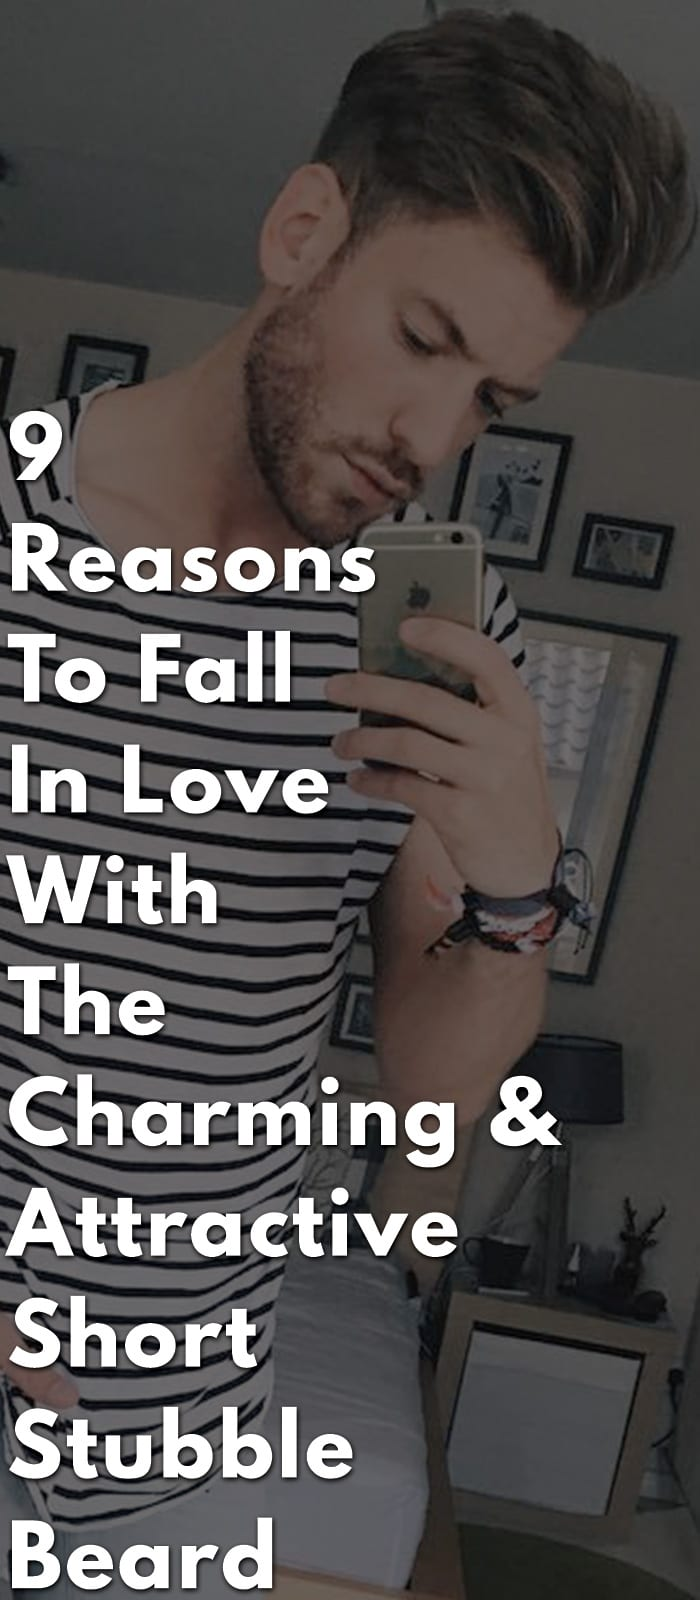 9-Reasons-To-Fall-In-Love-With-The-Charming-&-Attractive-Short-Stubble-Beard